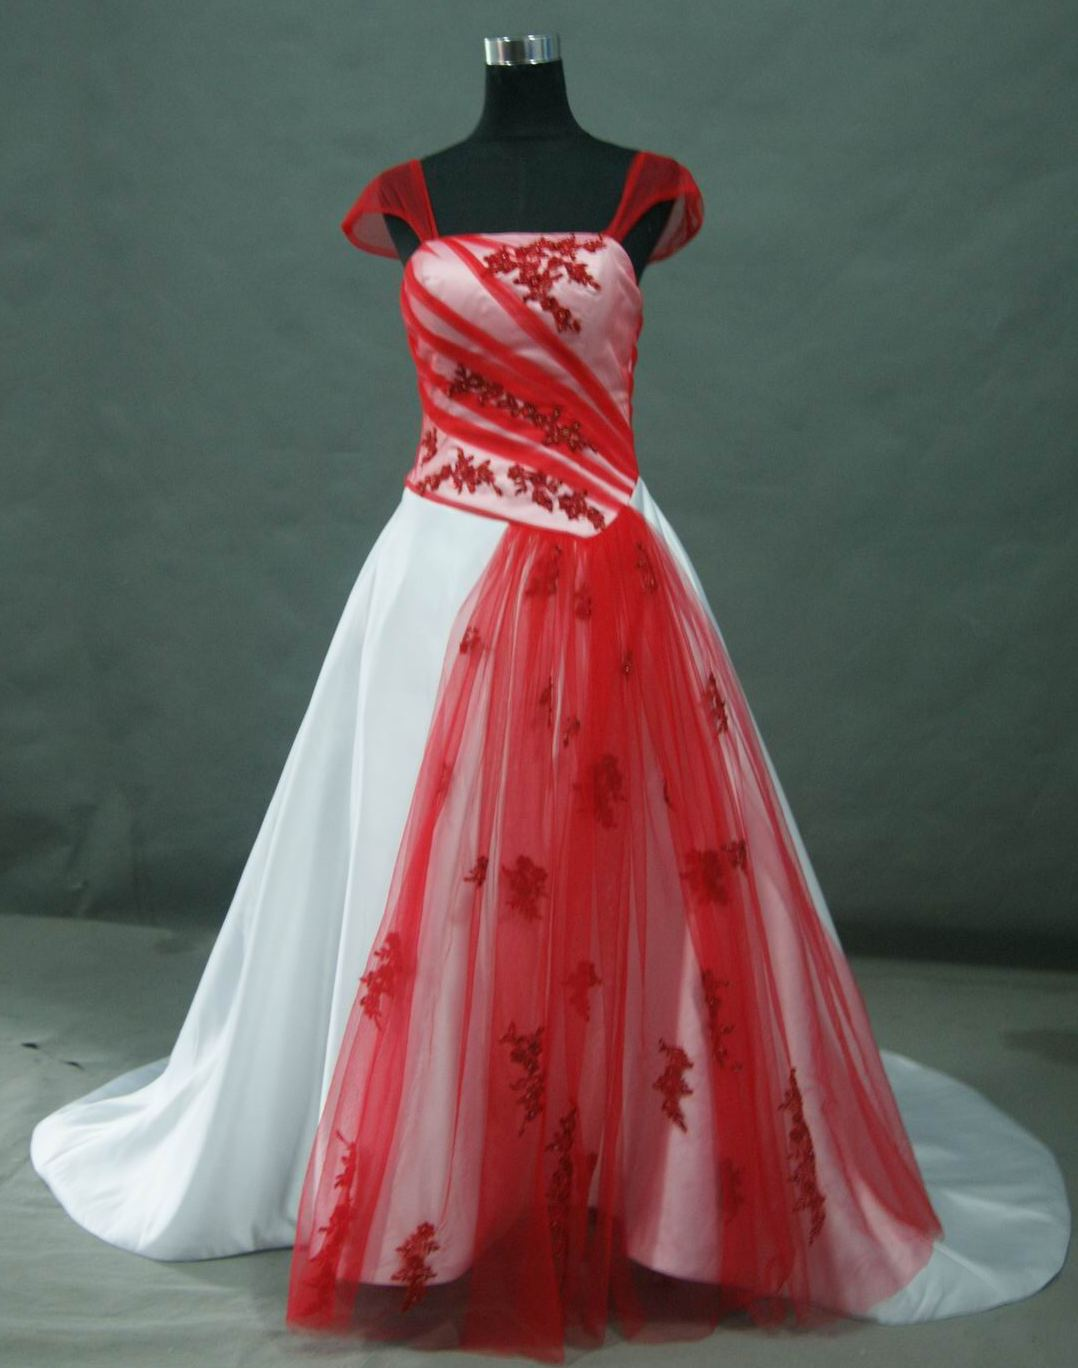 file image: red and white wedding gown